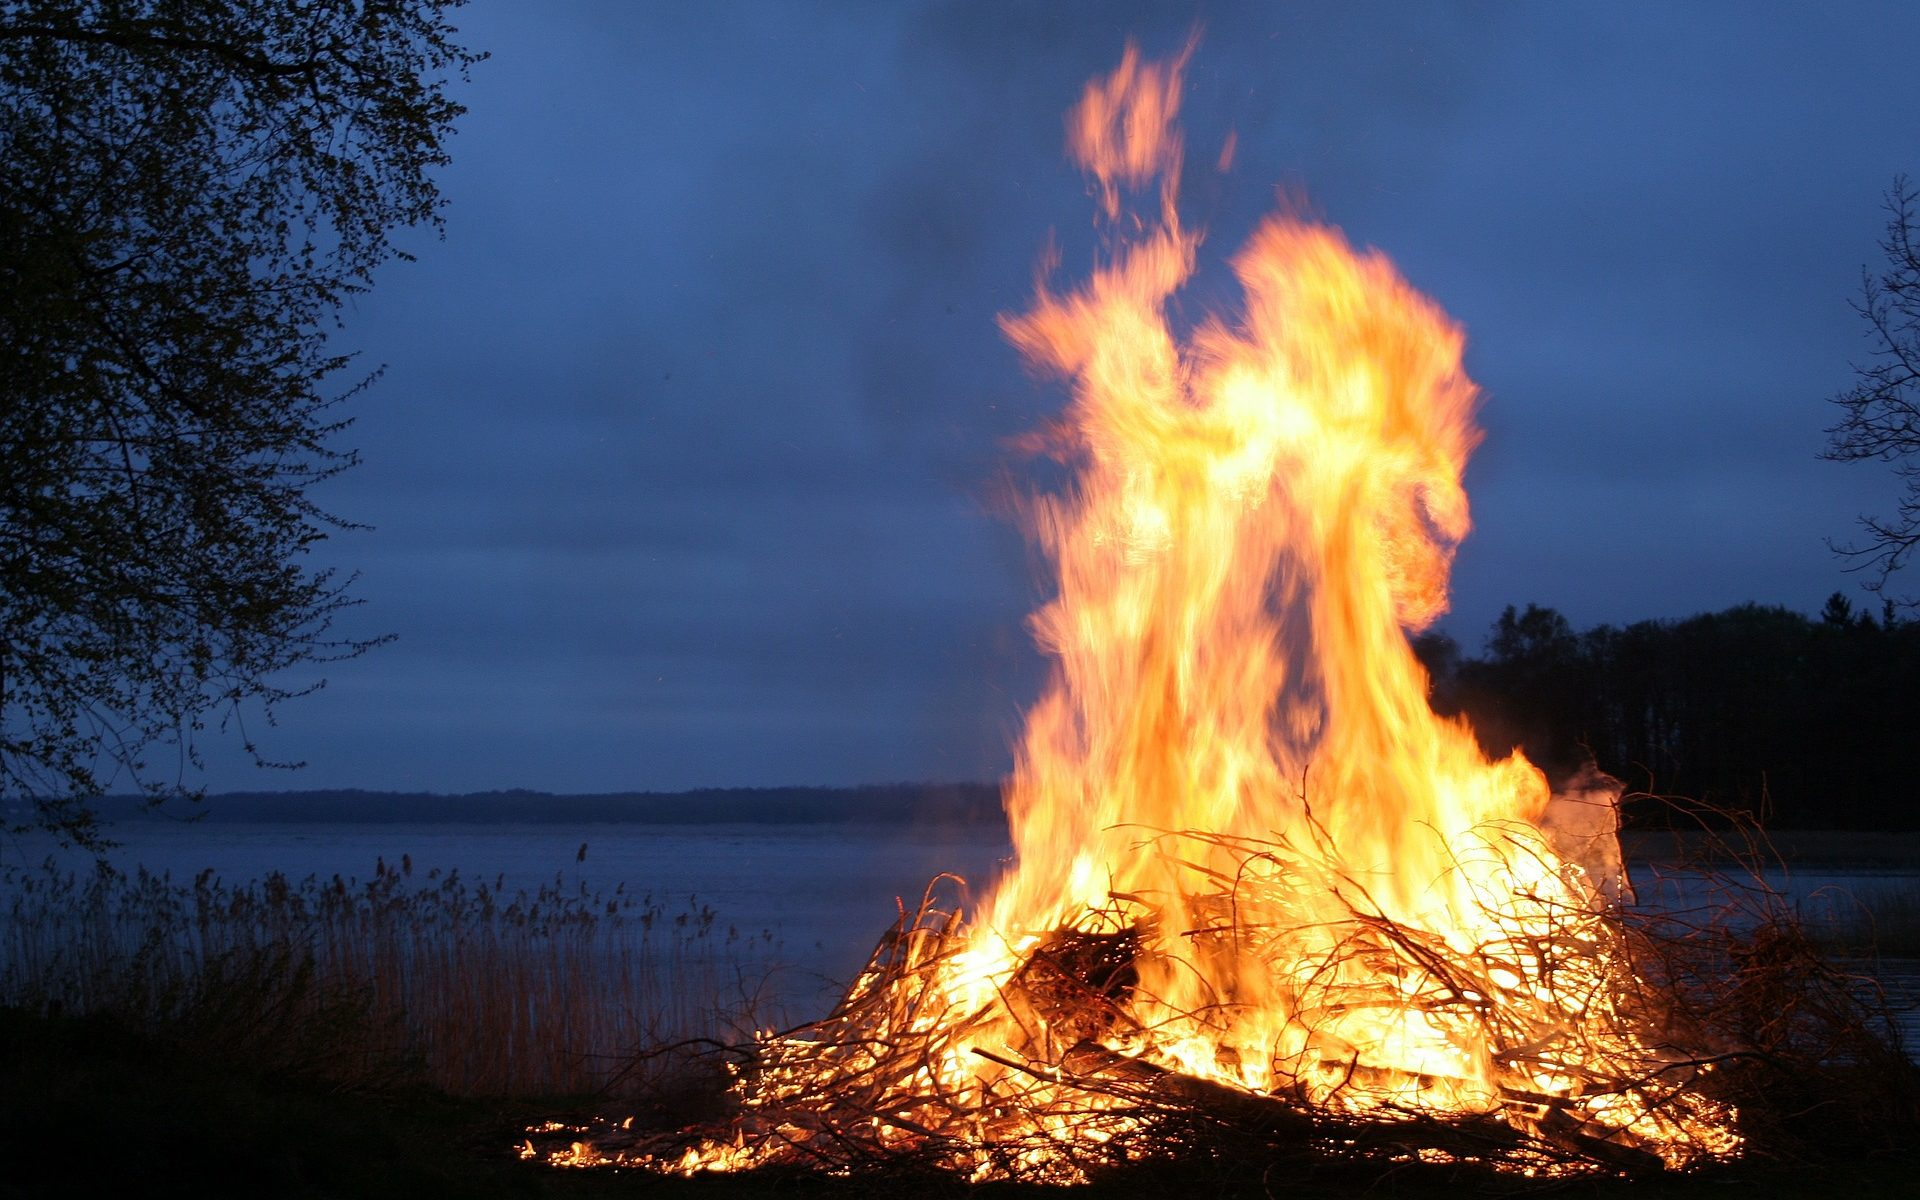 bonfire by a lake at dusk